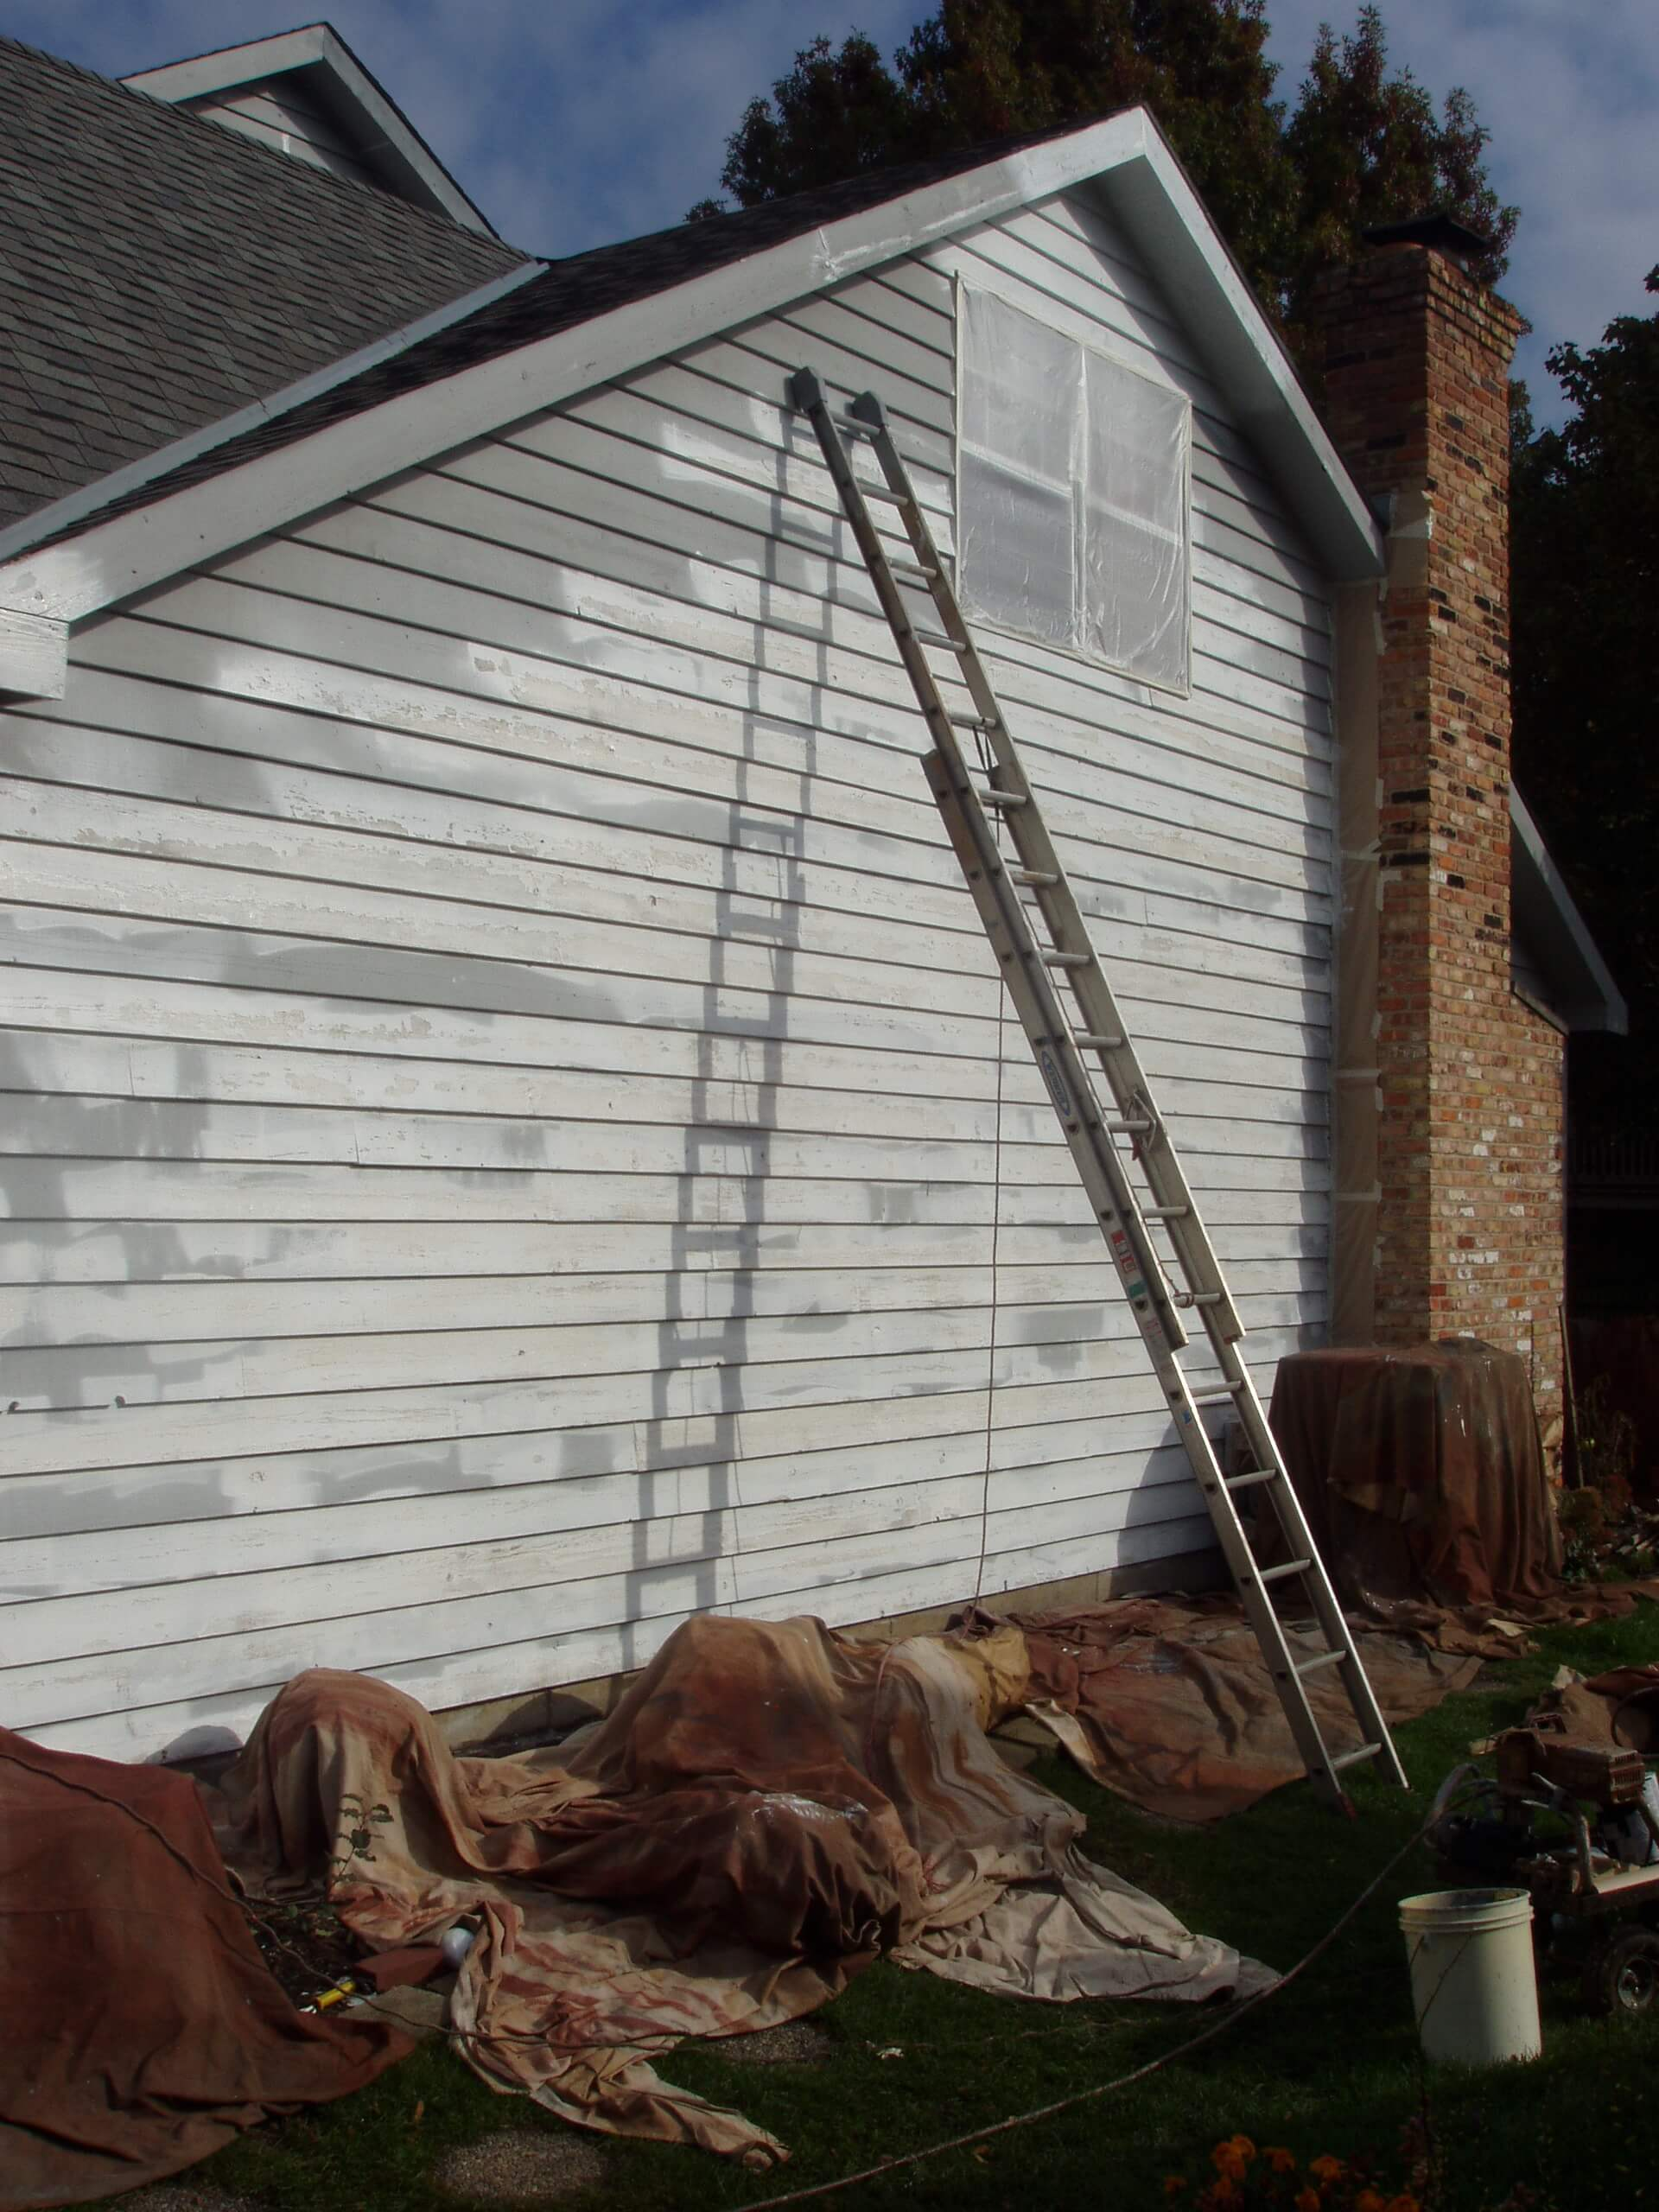 Ladder leaning against the side of a house that has been primed for painting